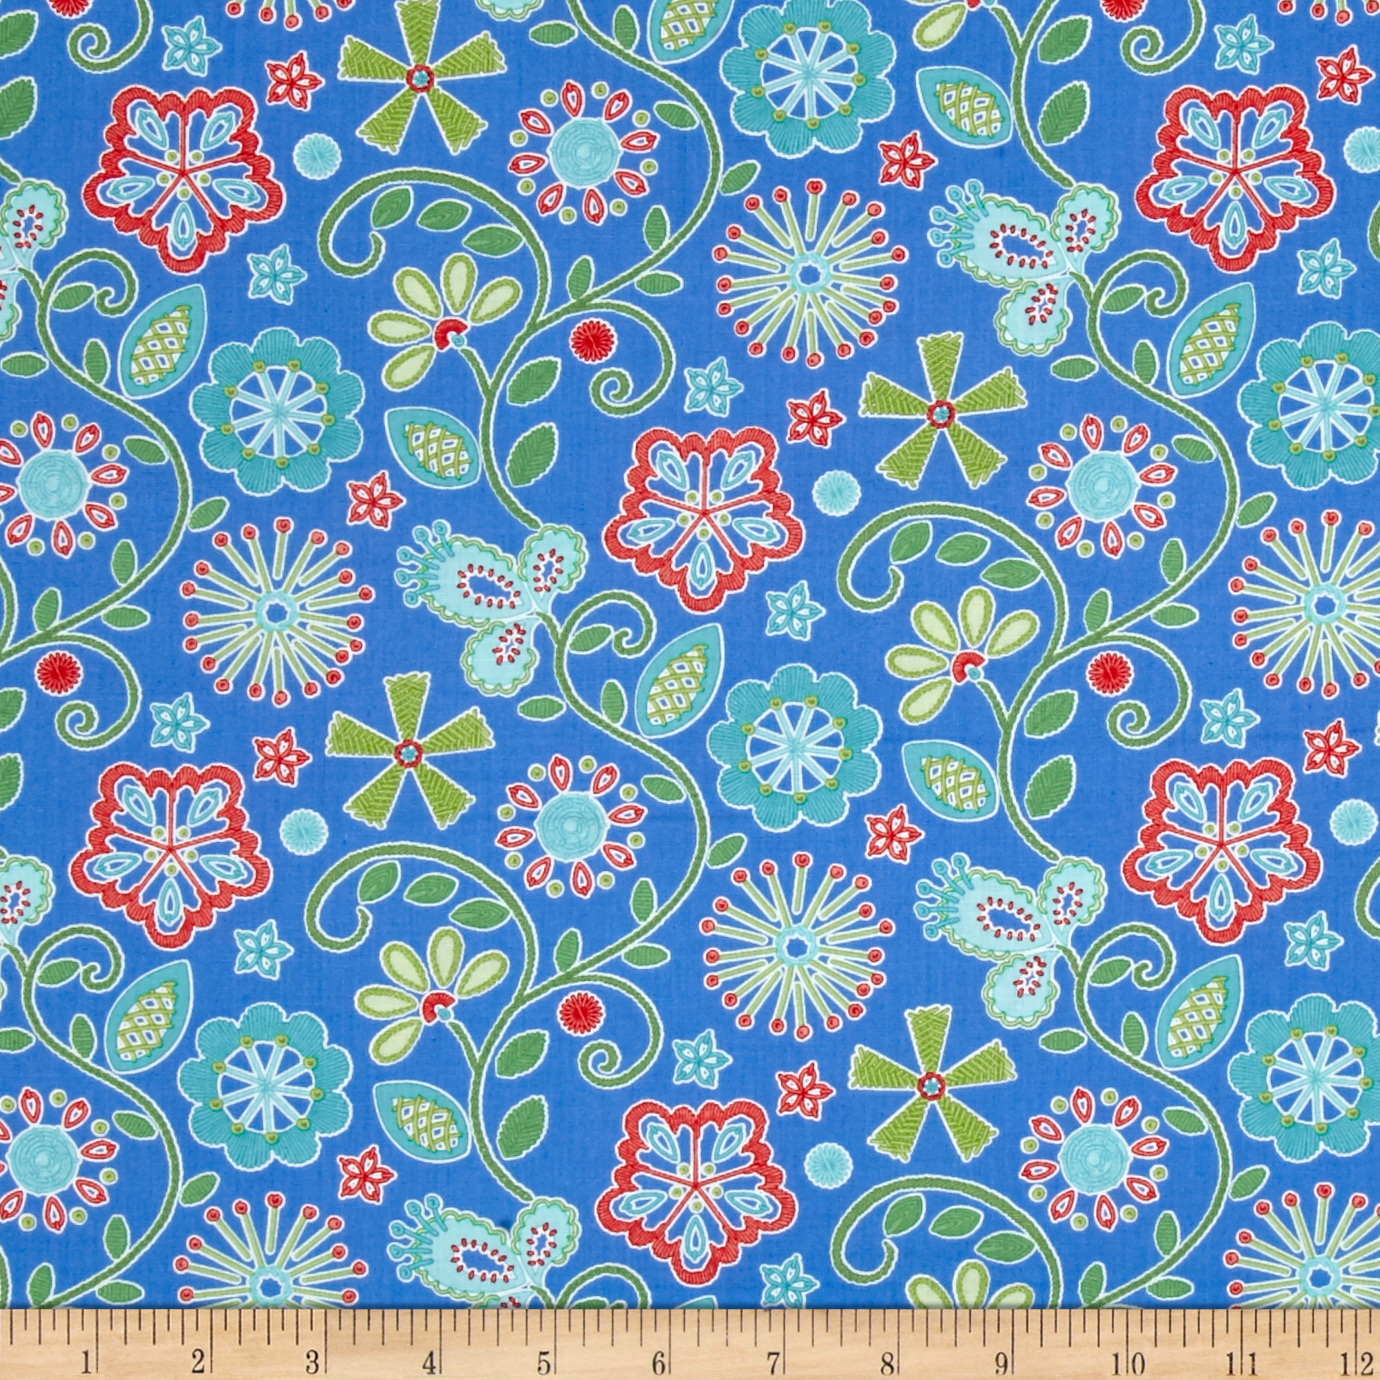 Sewing Room Embroidery Peri Blue Fabric